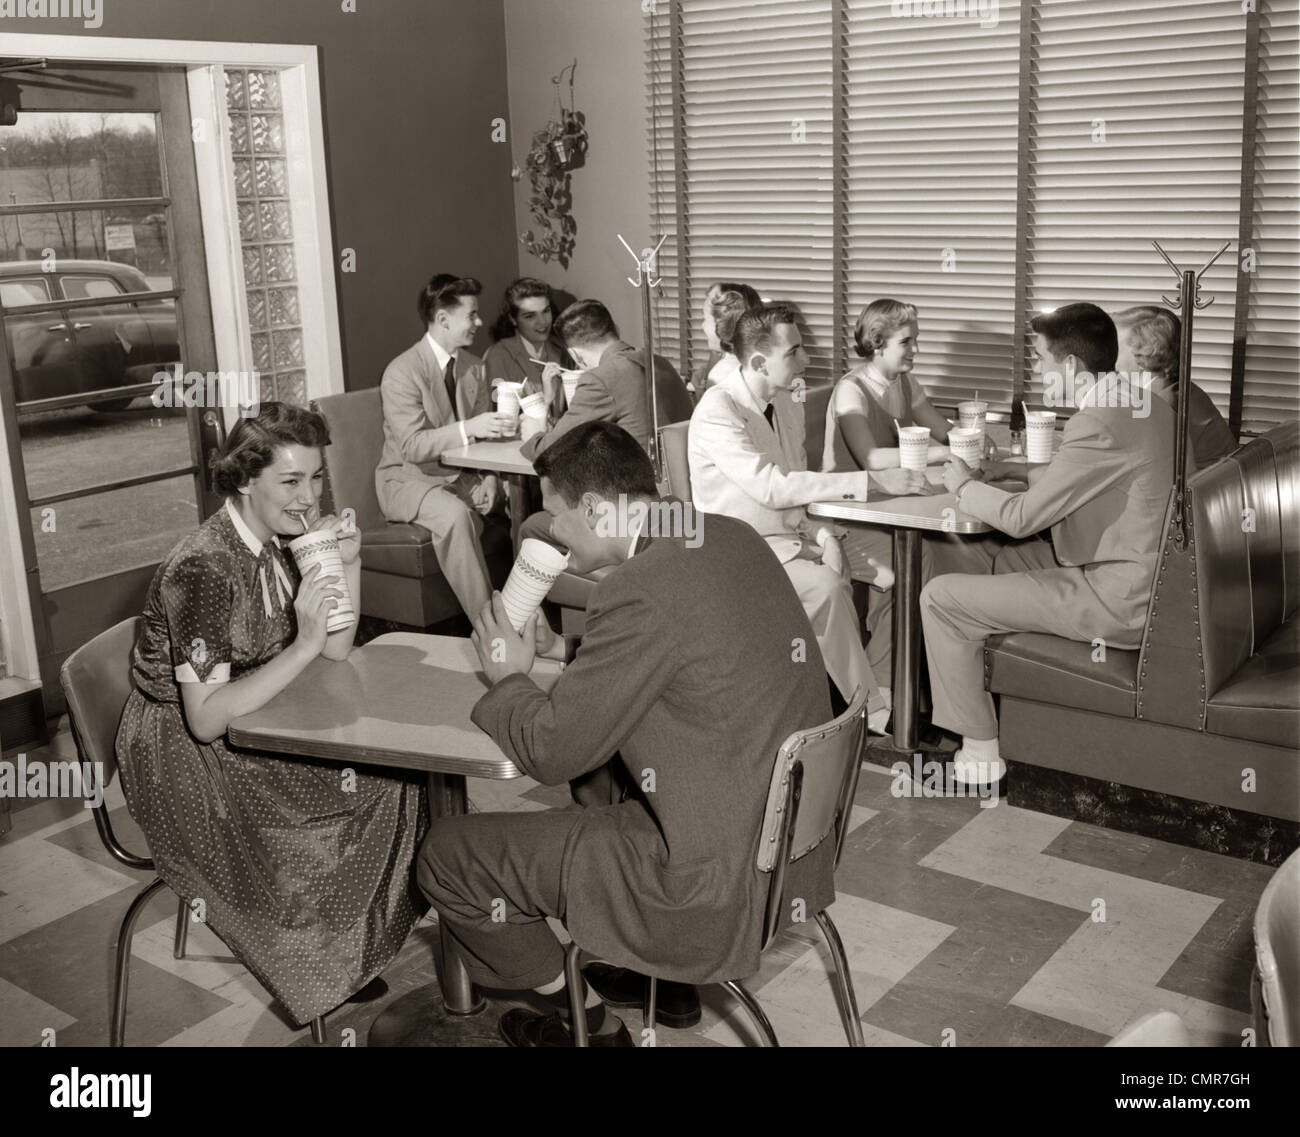 Exceptional 1950s MALT SHOP INTERIOR WITH TEENS AT BOOTHS DRINKING FROM DIXIE CUPS